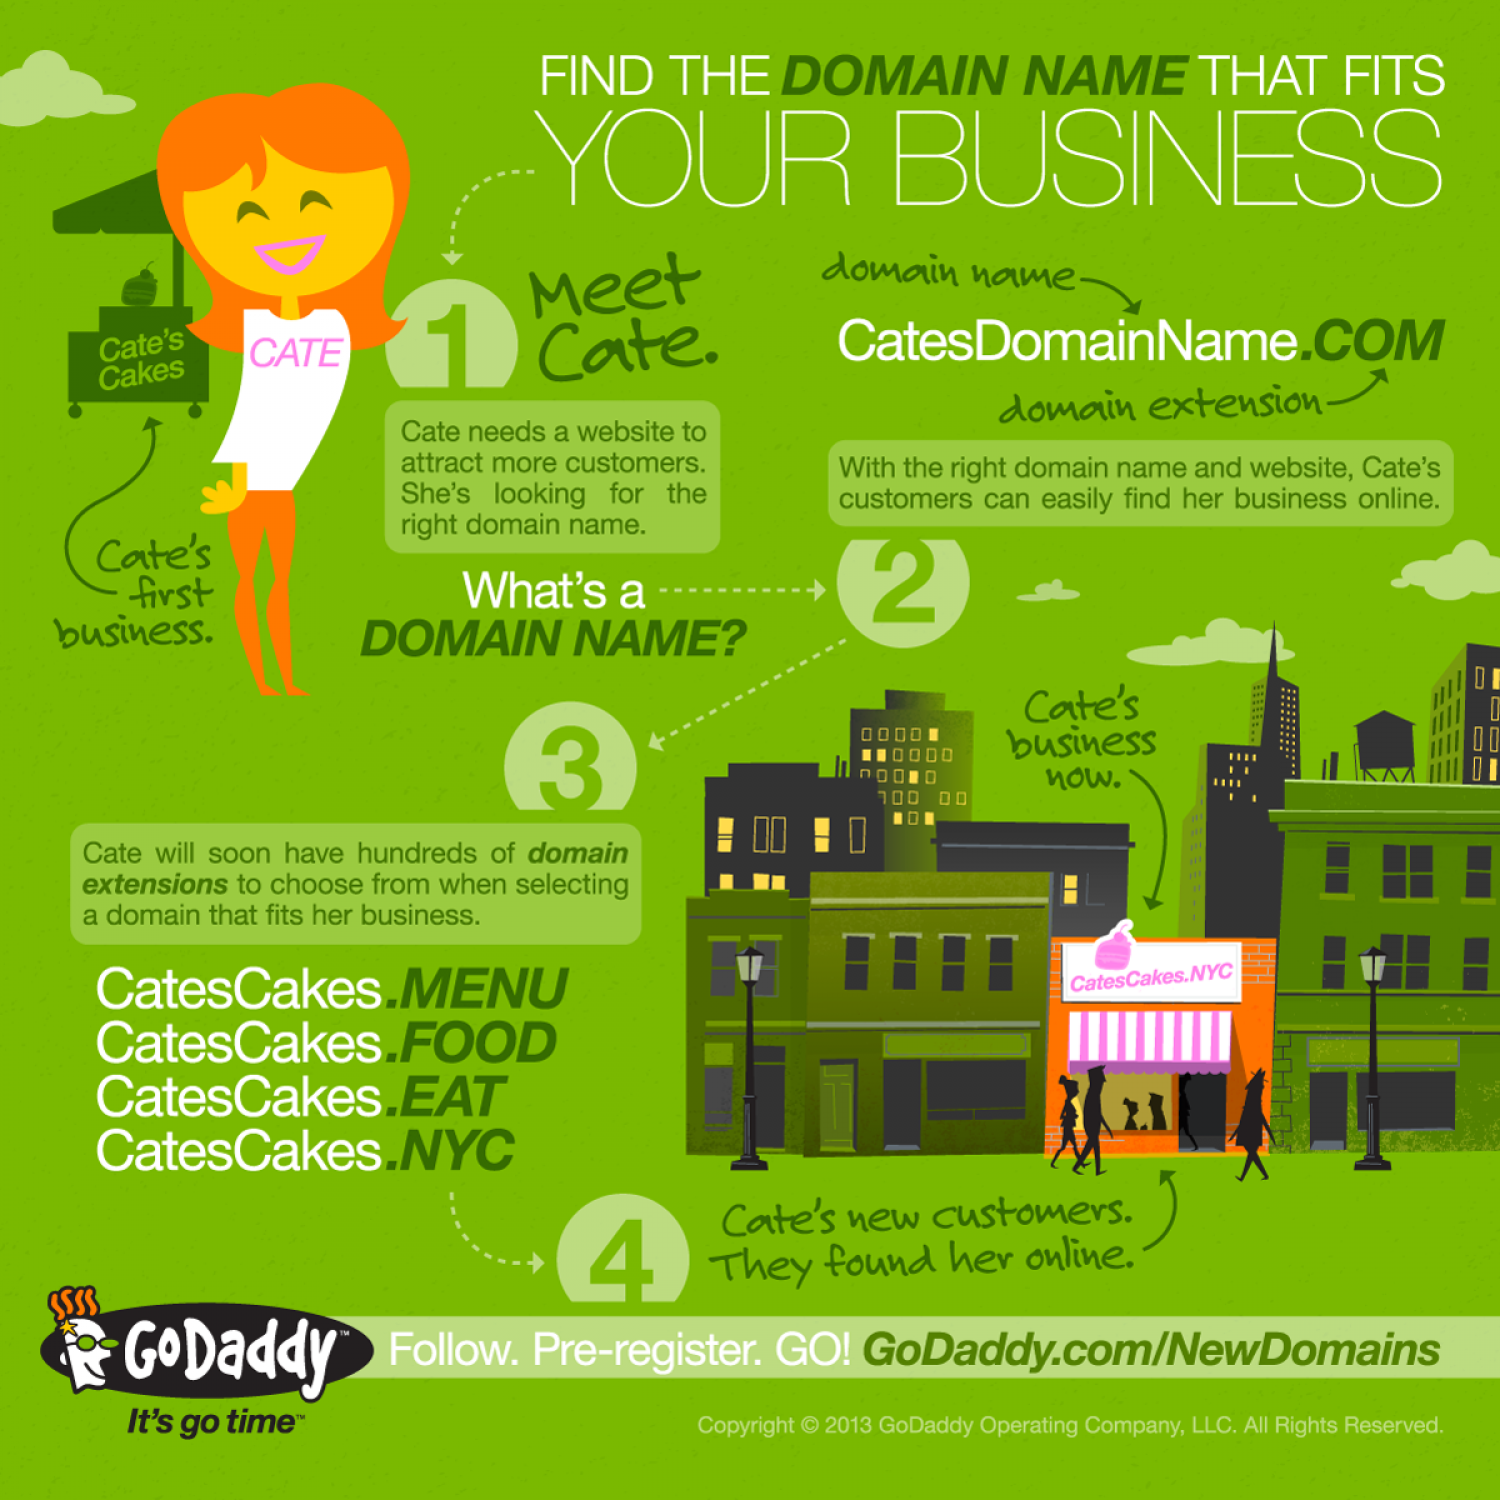 Find the domain name that fits your business Infographic